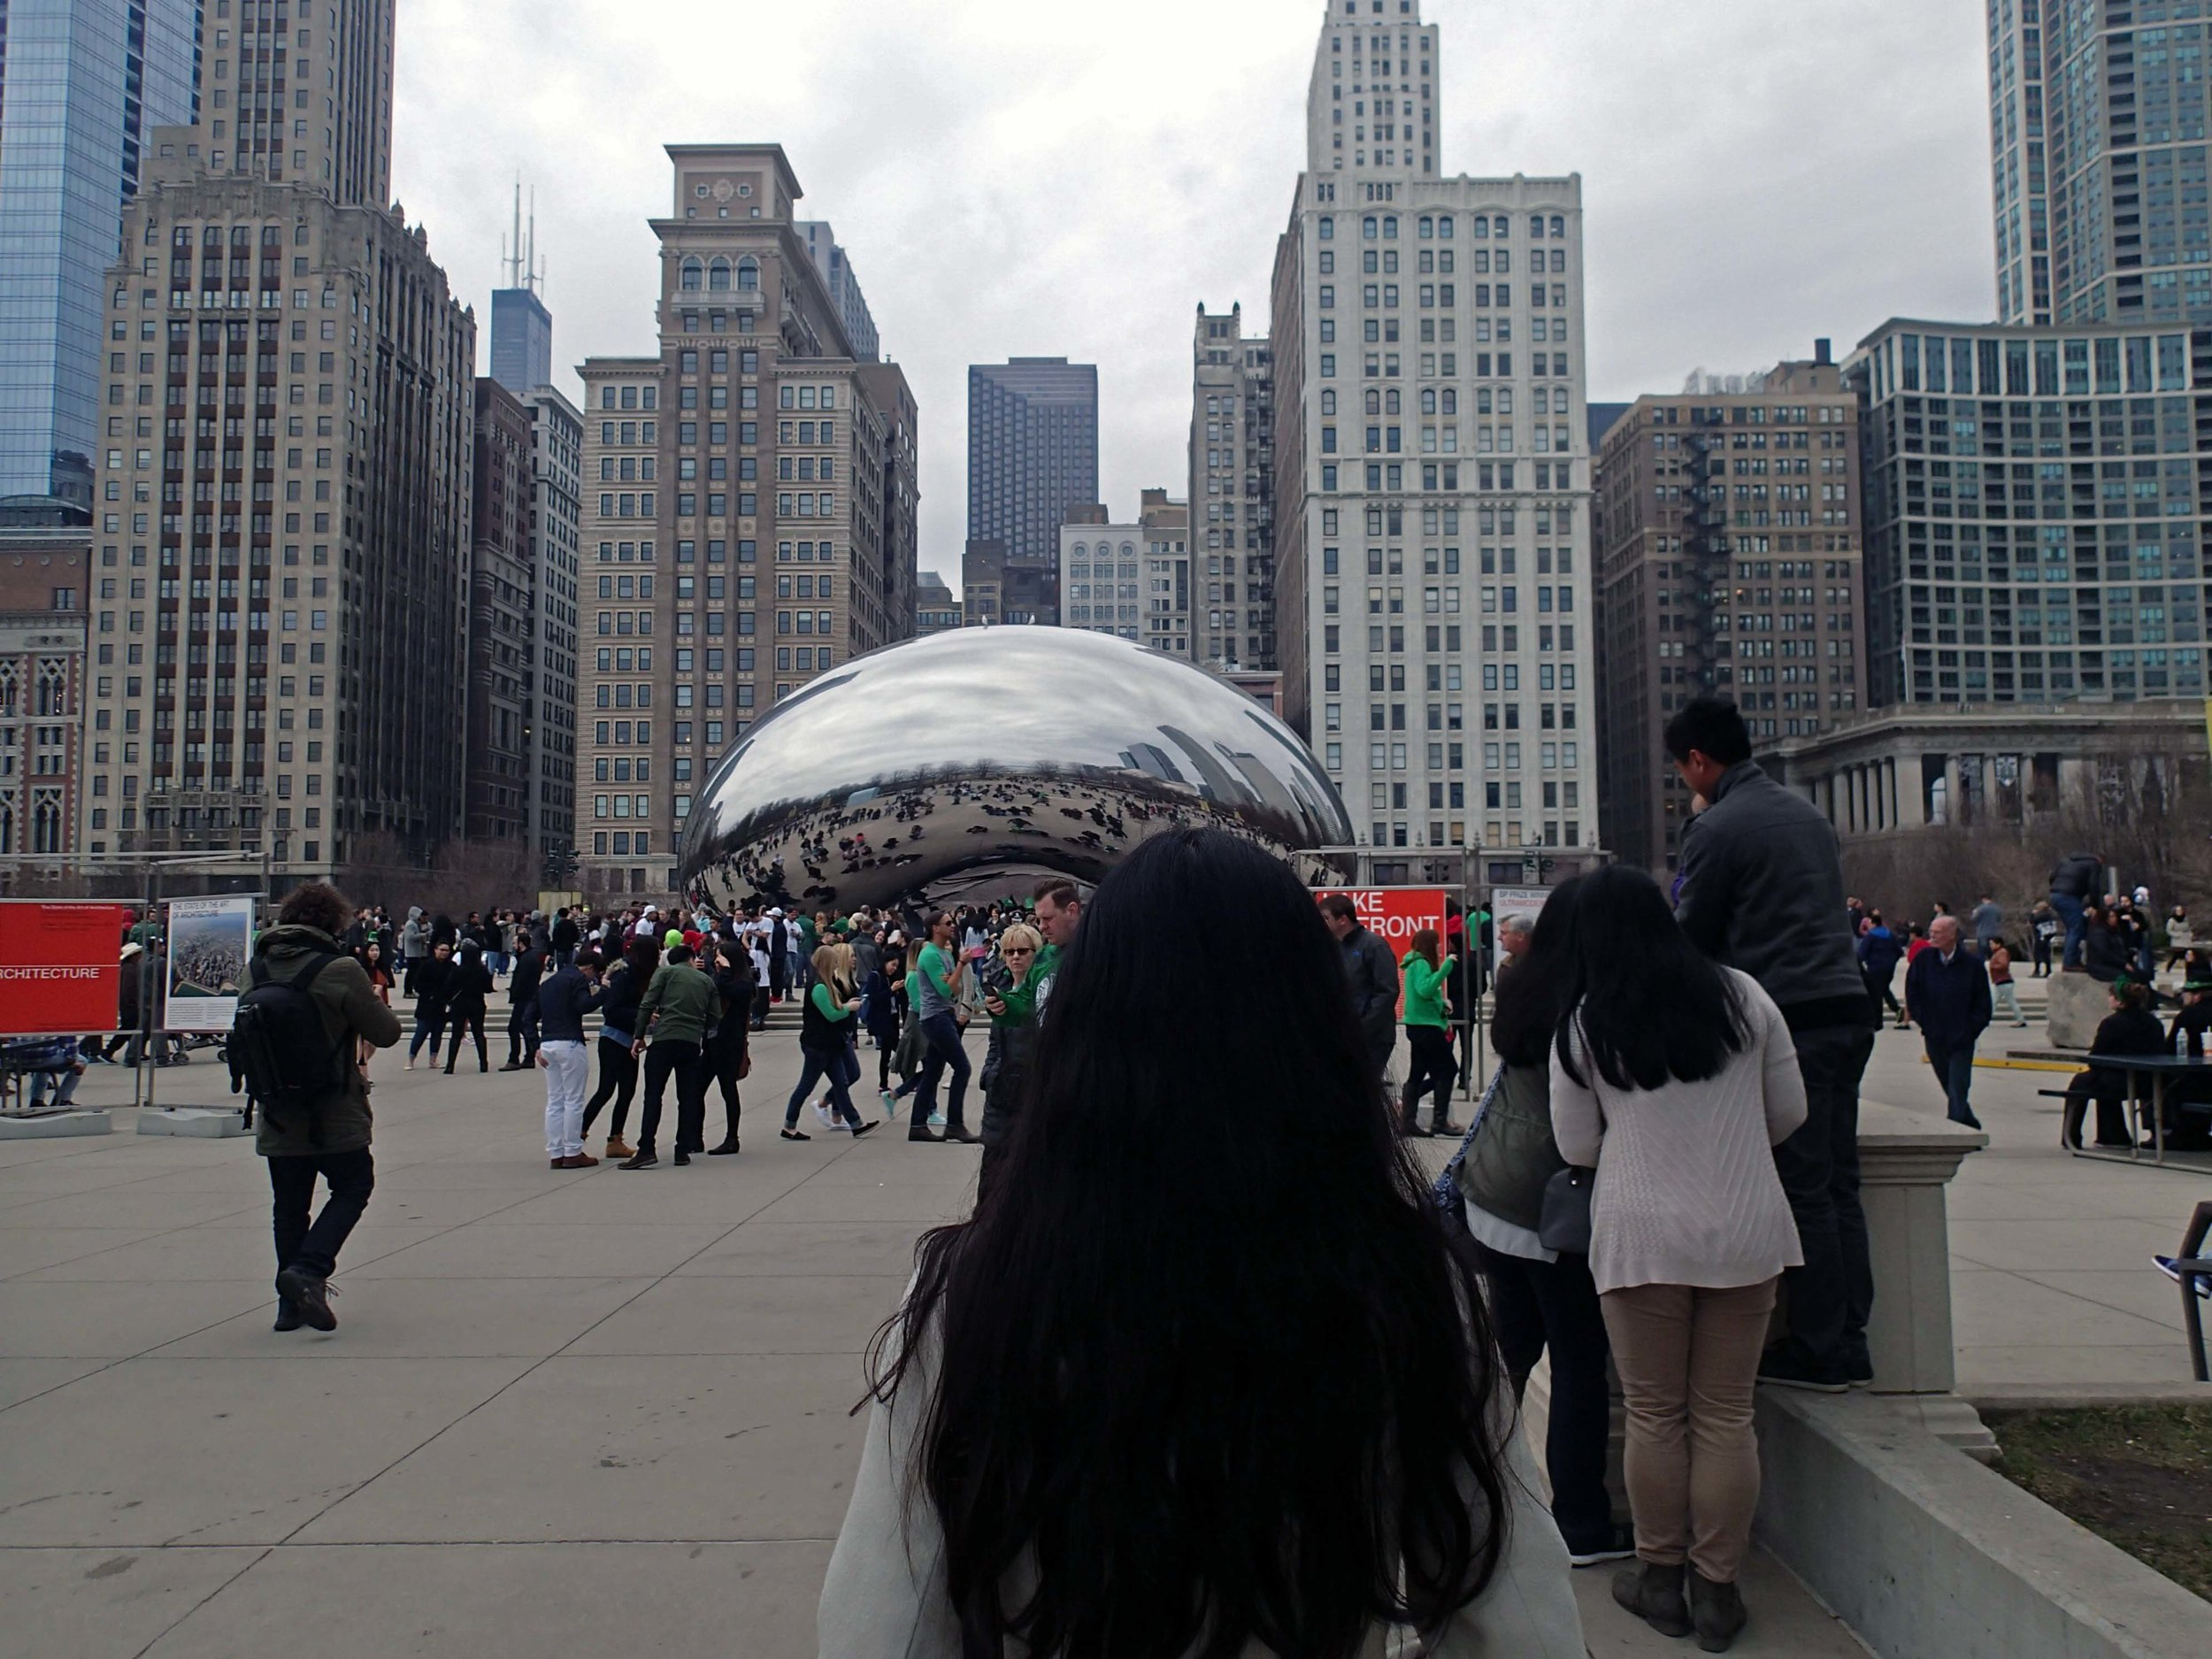 Ciao and the bean.jpg